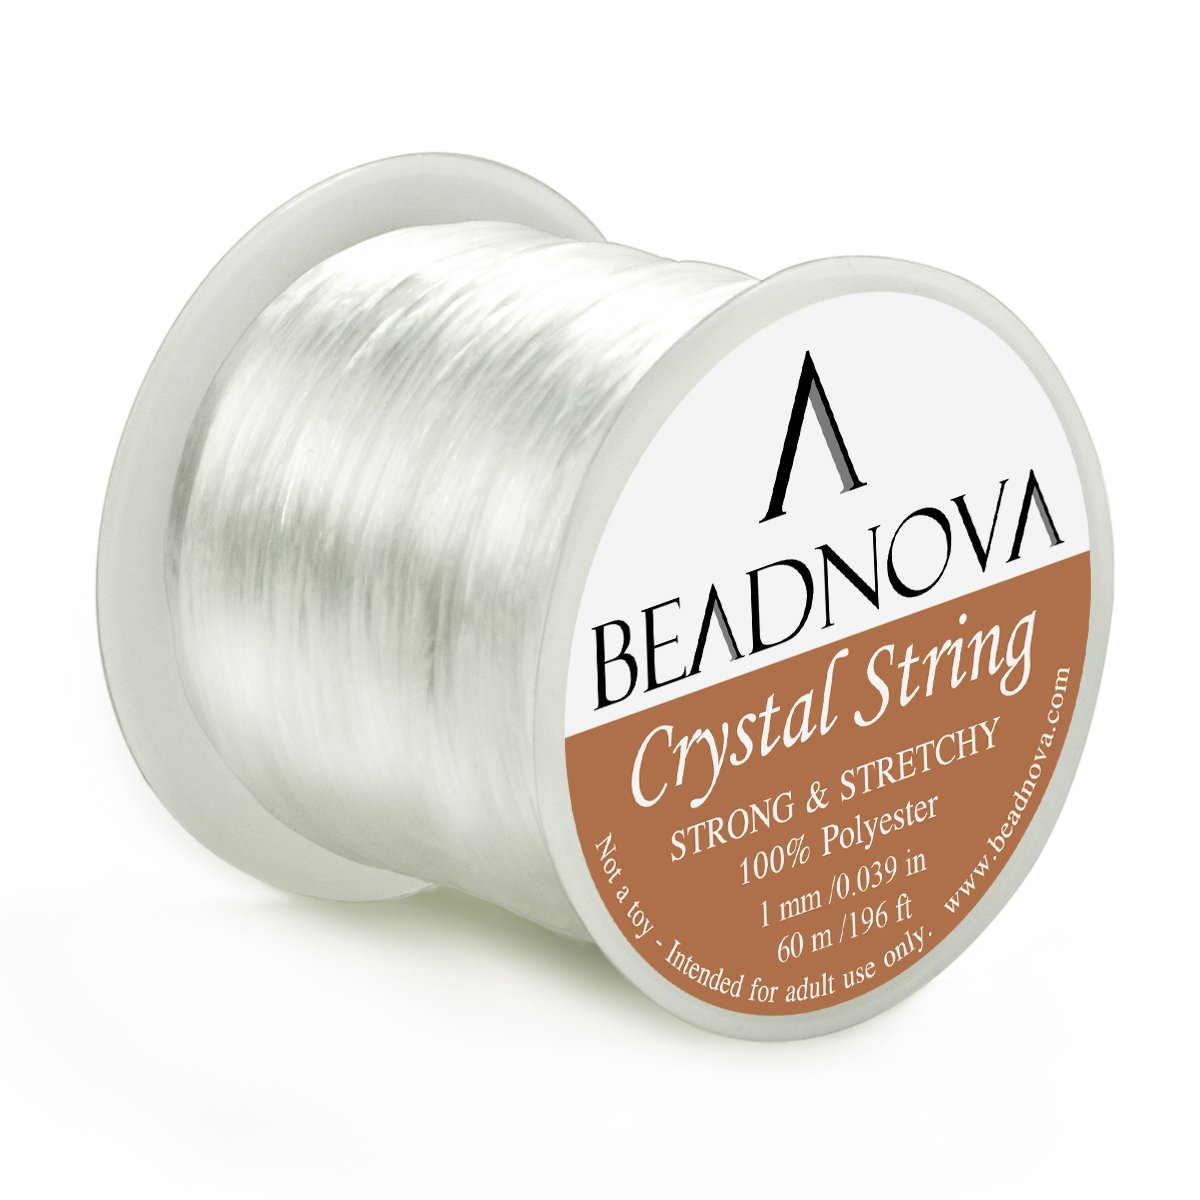 Thread where to buy ice picks in bulk - Beadnova 1mm Elastic Stretch Polyester Crystal String Cord For Jewelry Making Bracelet Beading Thread 60m Roll Clear White